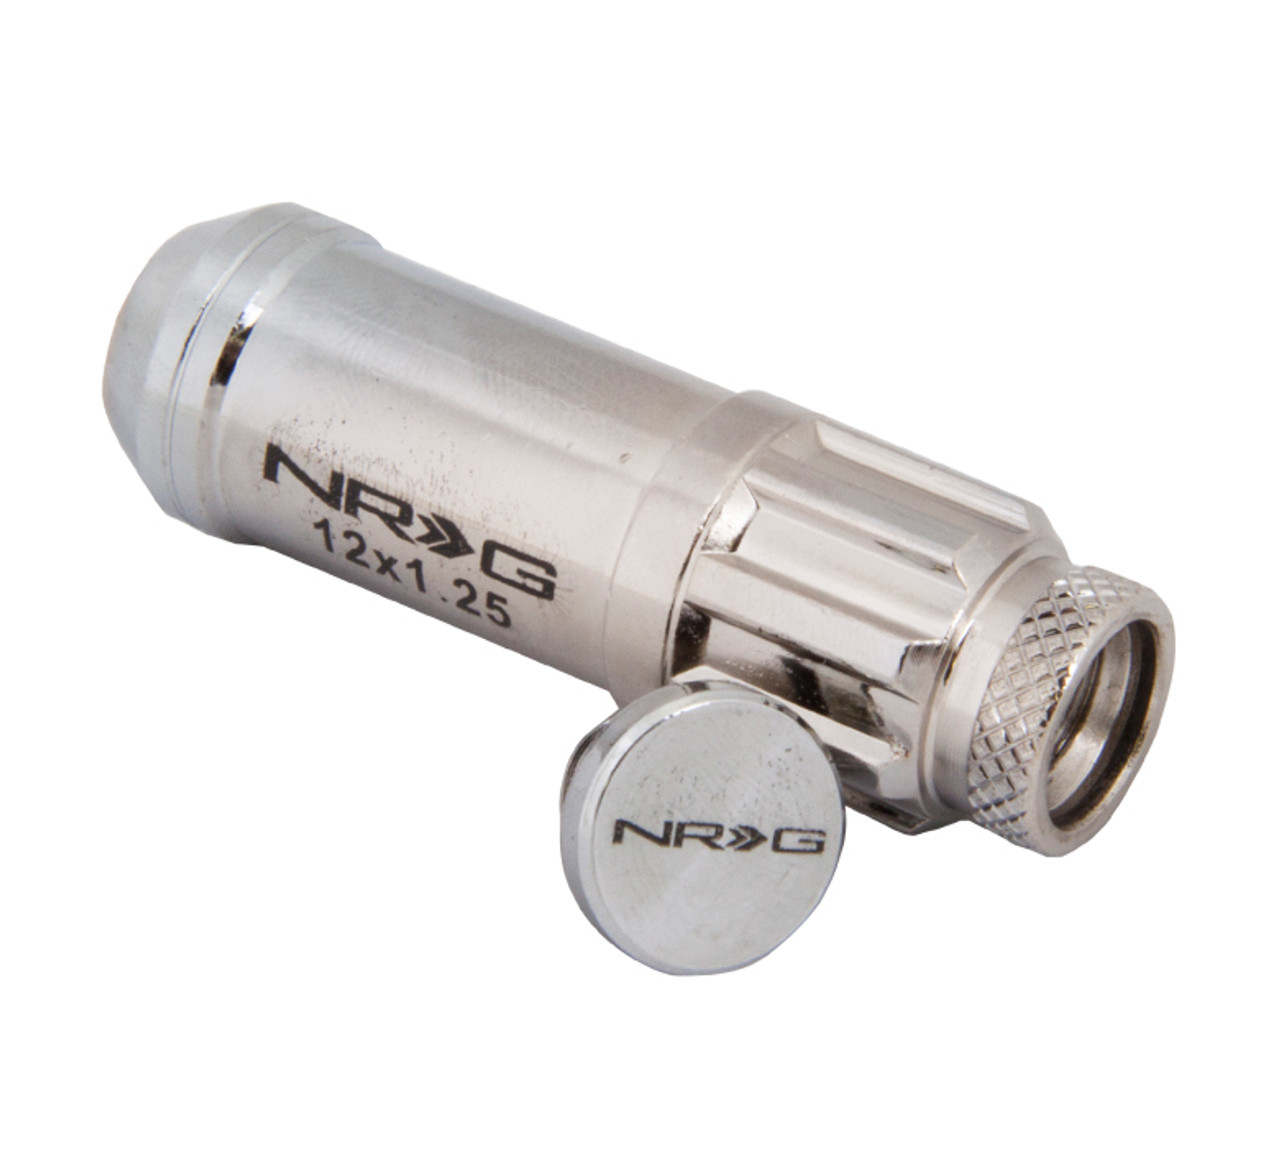 NRG Lug Nut Set 12 x 1.25 (Open End / Chrome)